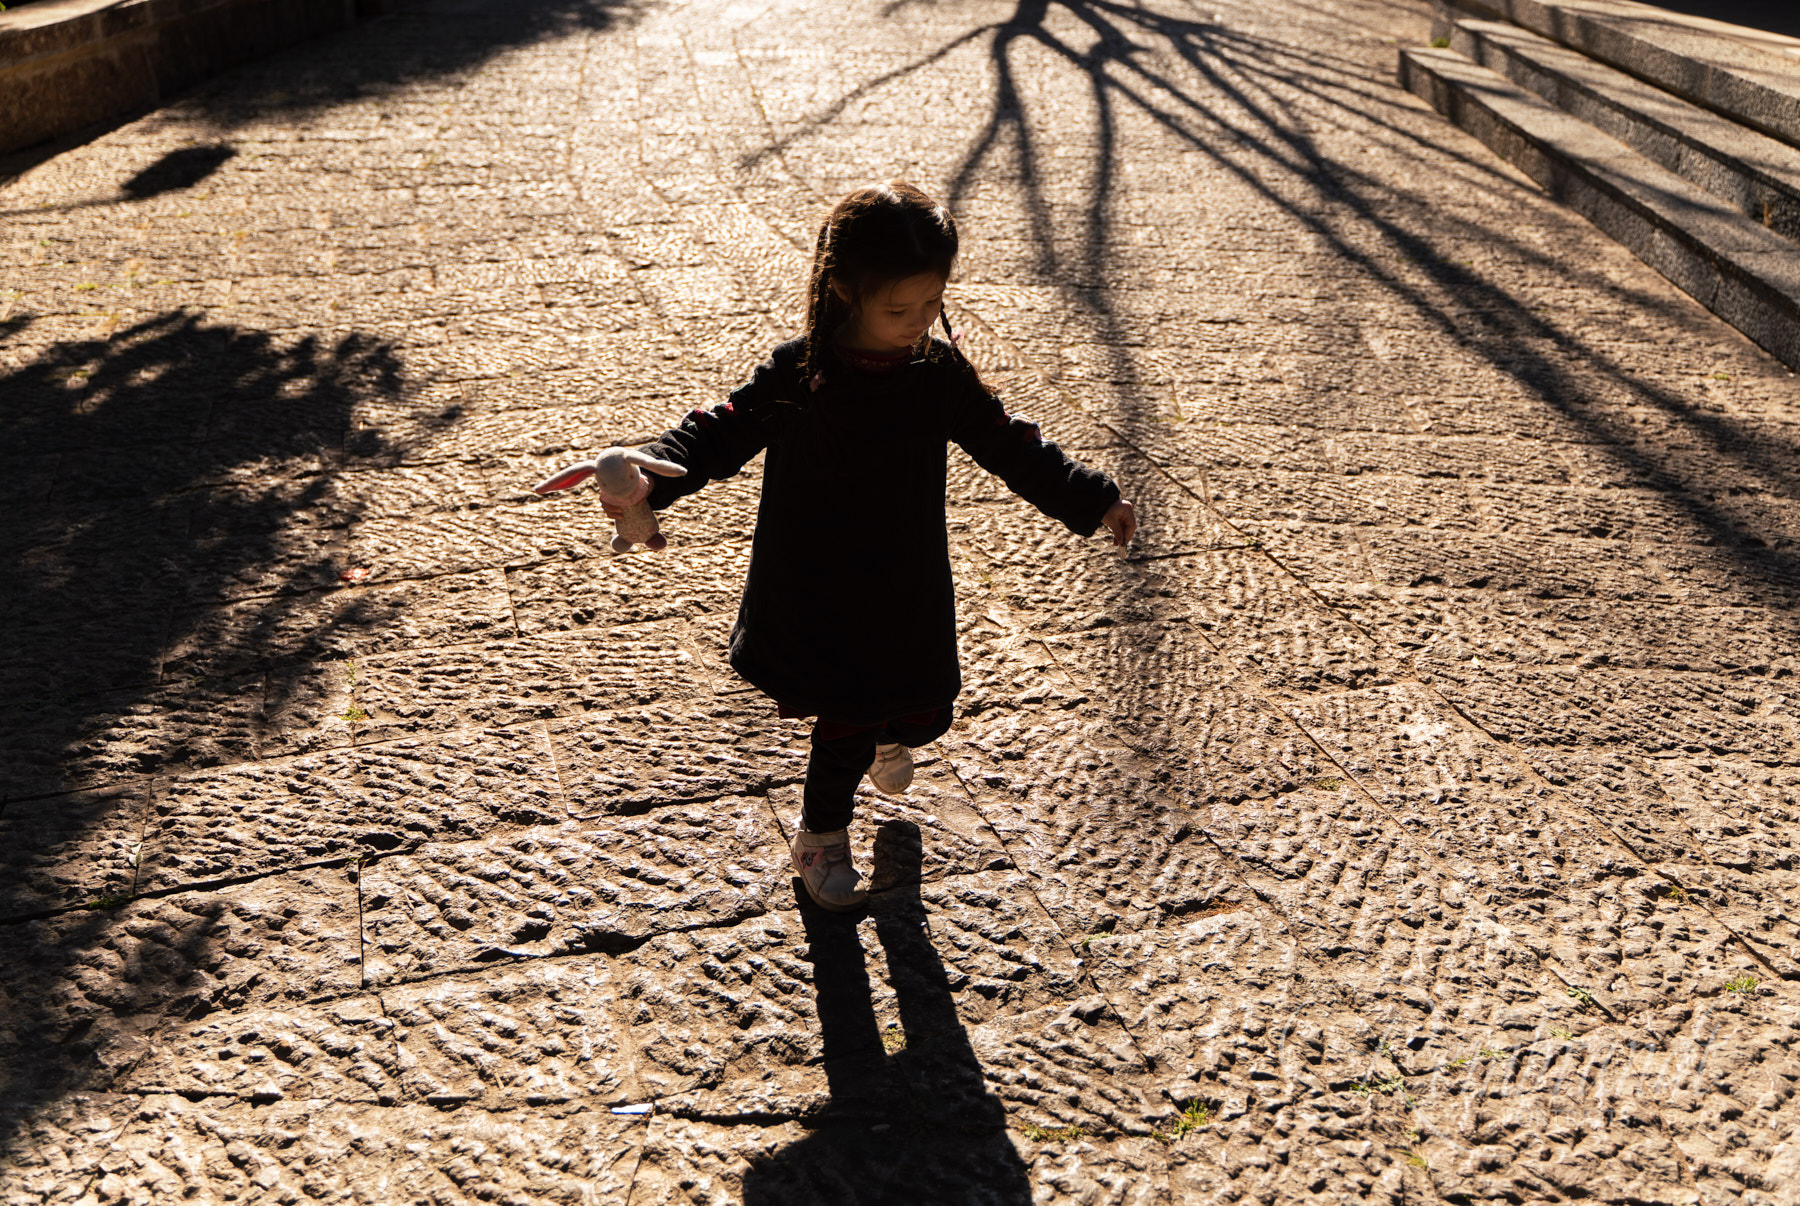 The magic of watching a little girl play with her own shadow in long evening light.